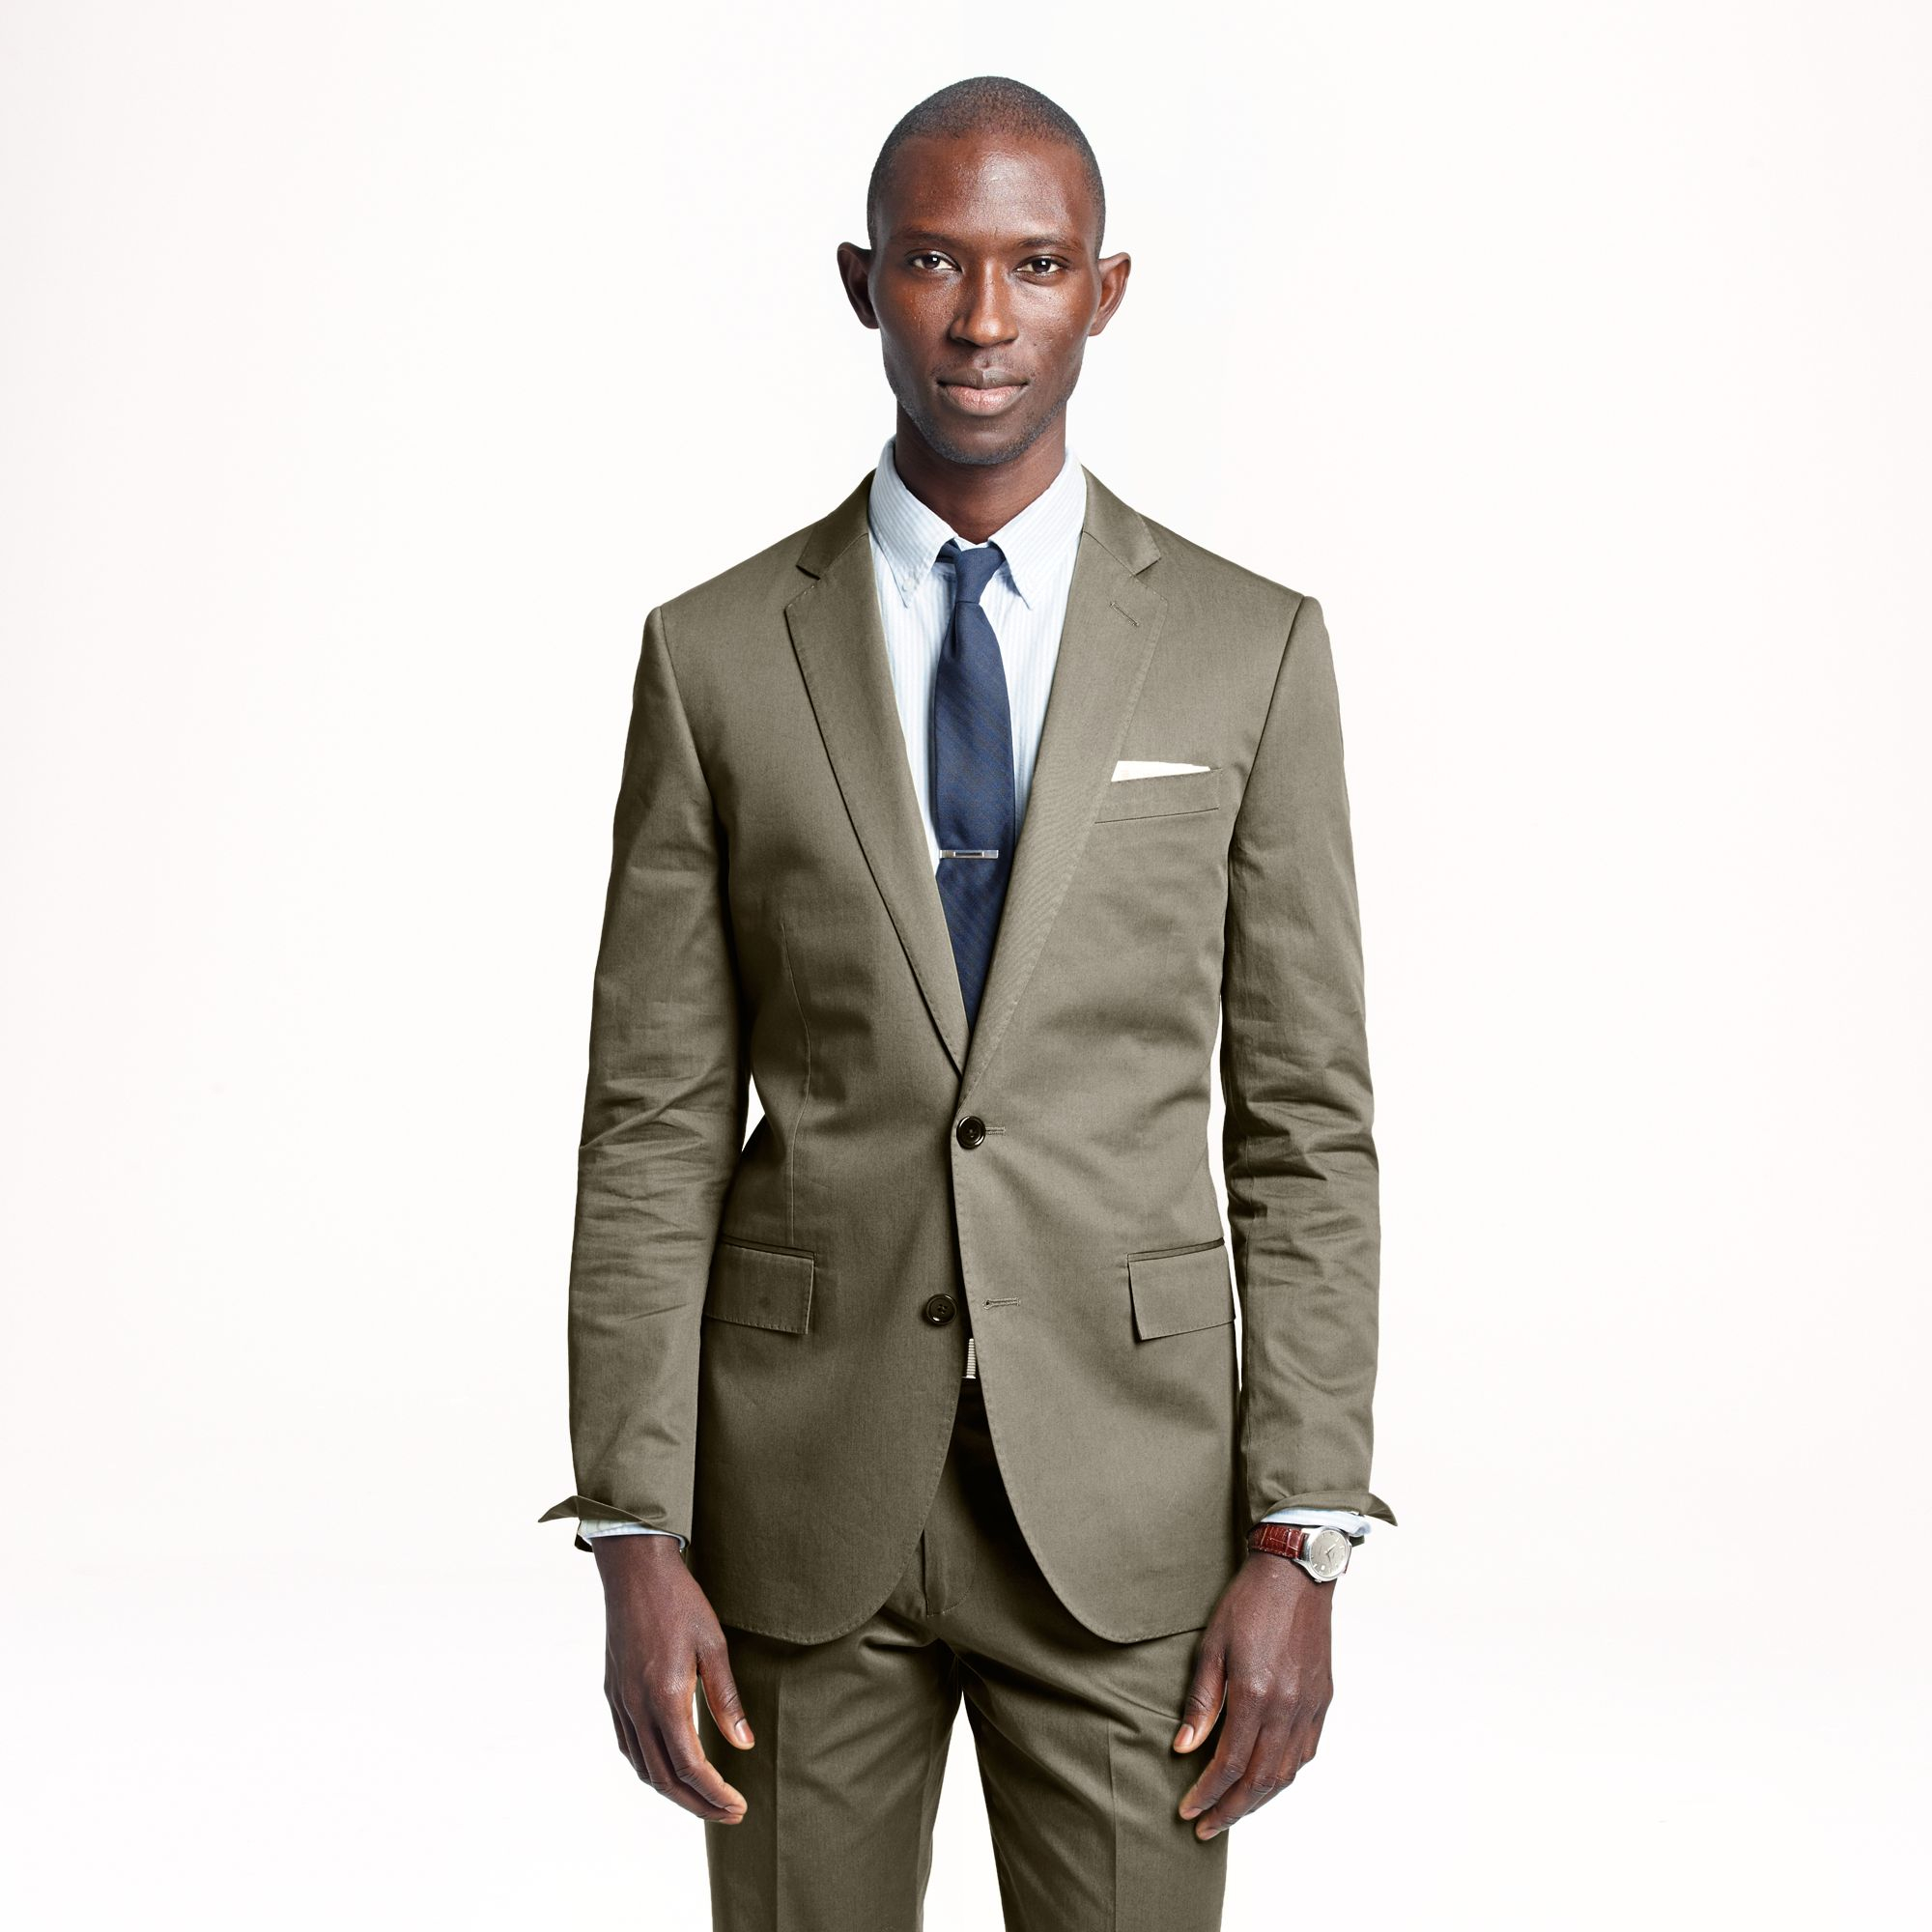 J.crew Ludlow Suit Jacket with Double Vent in Italian Chino in